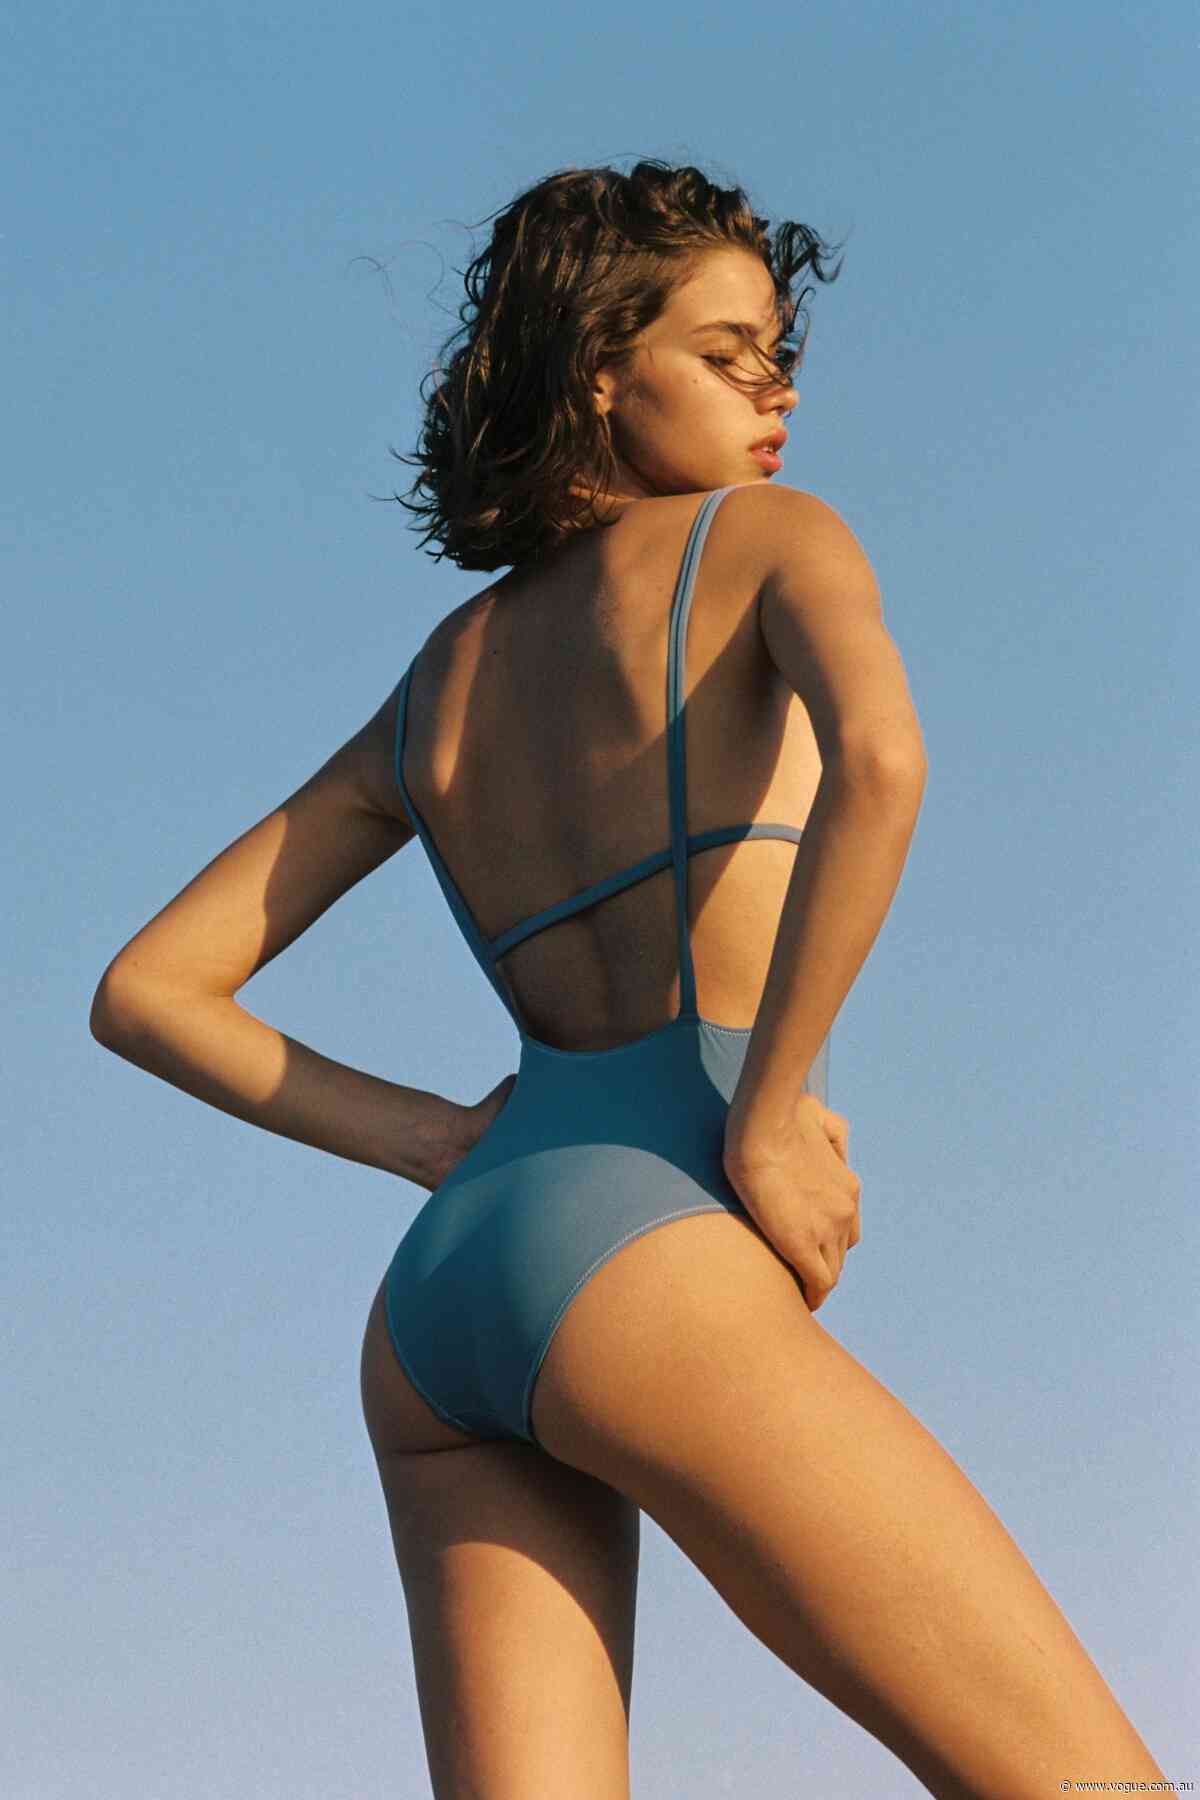 Beach please: 7 swim labels you'll want to live in this summer